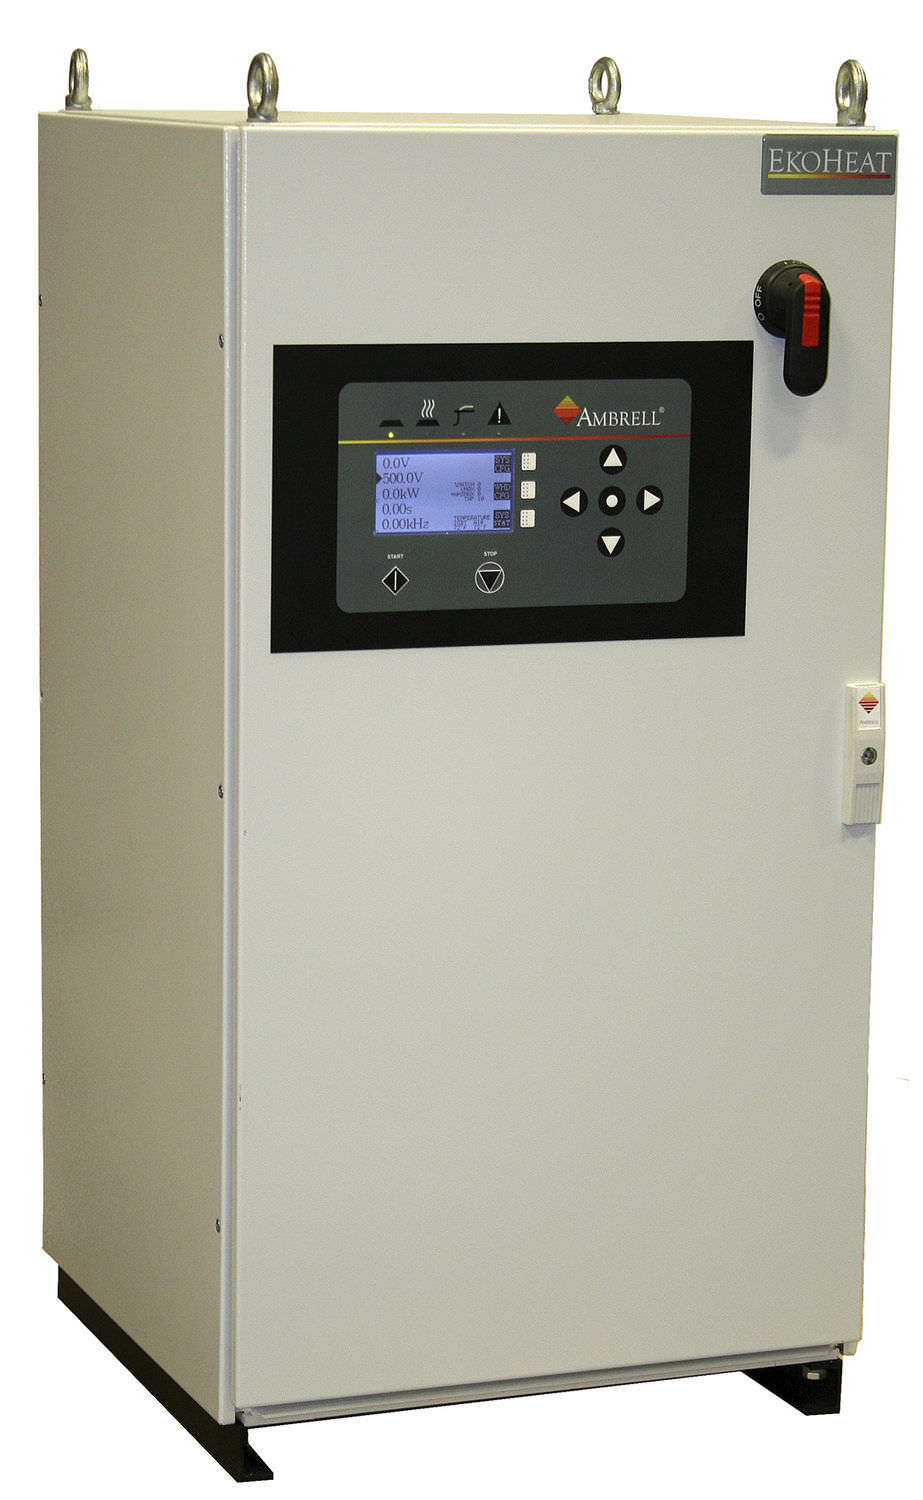 EKOHEAT 100/3 Induction heater 100 kW, 2-5 kHz